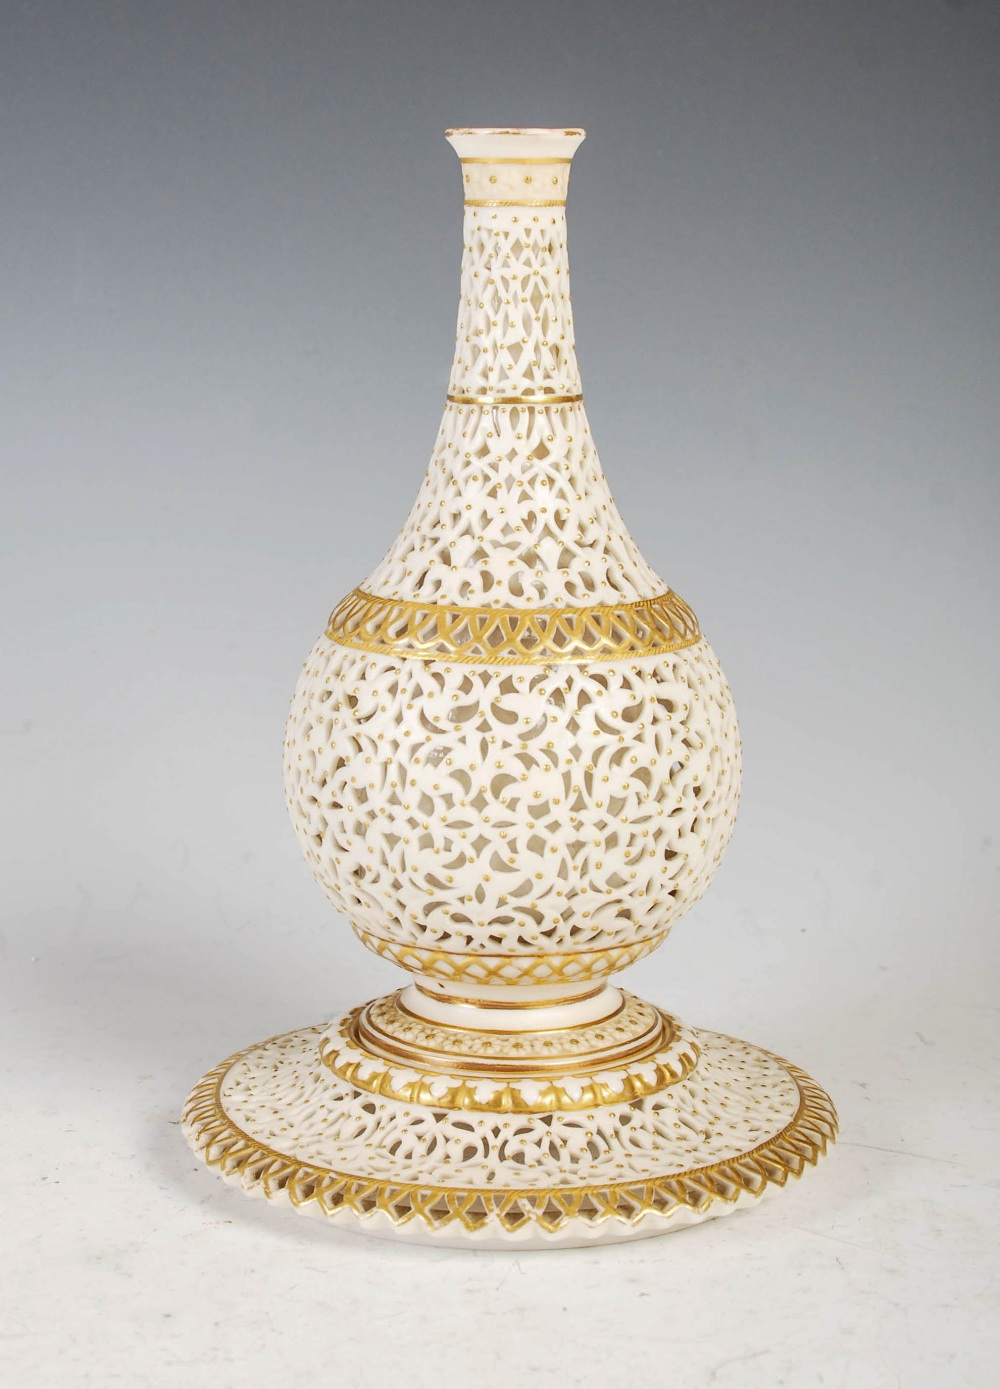 A Grainger & Co. Royal Worcester reticulated bottle vase, dated 1902, on integral circular stand,